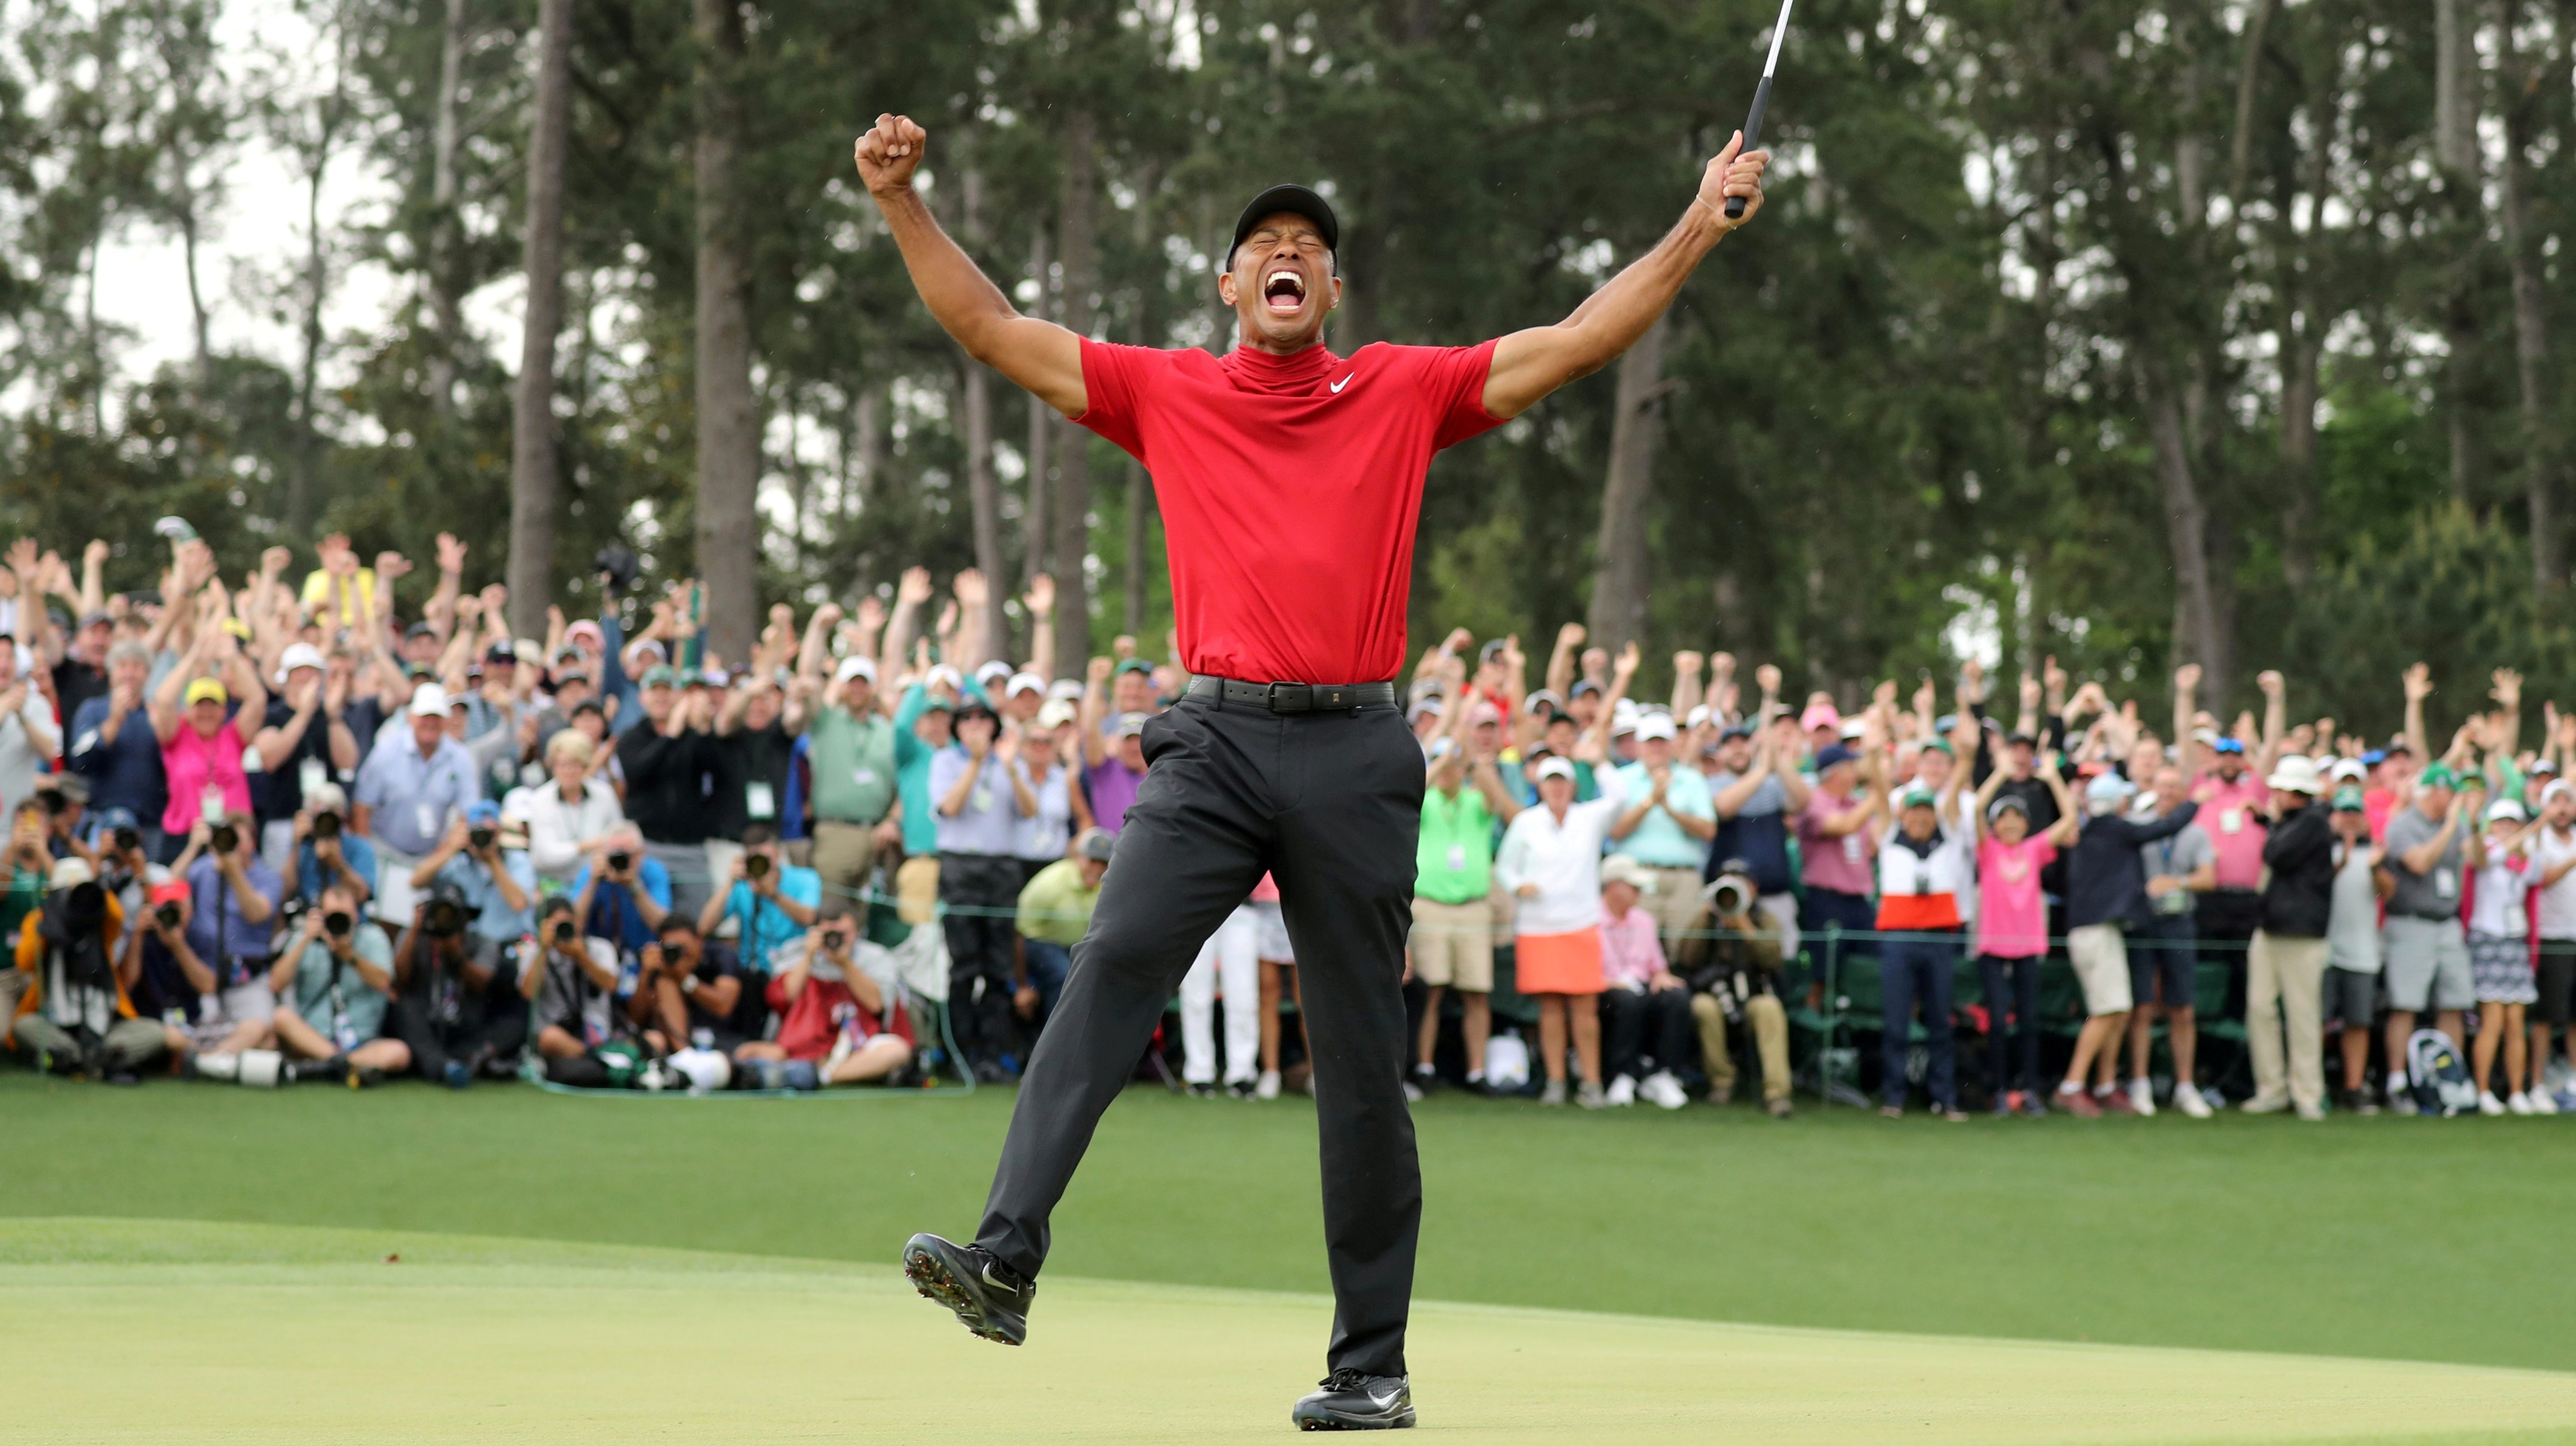 qz.com - Adam Epstein - What Tiger Woods means for golf on TV